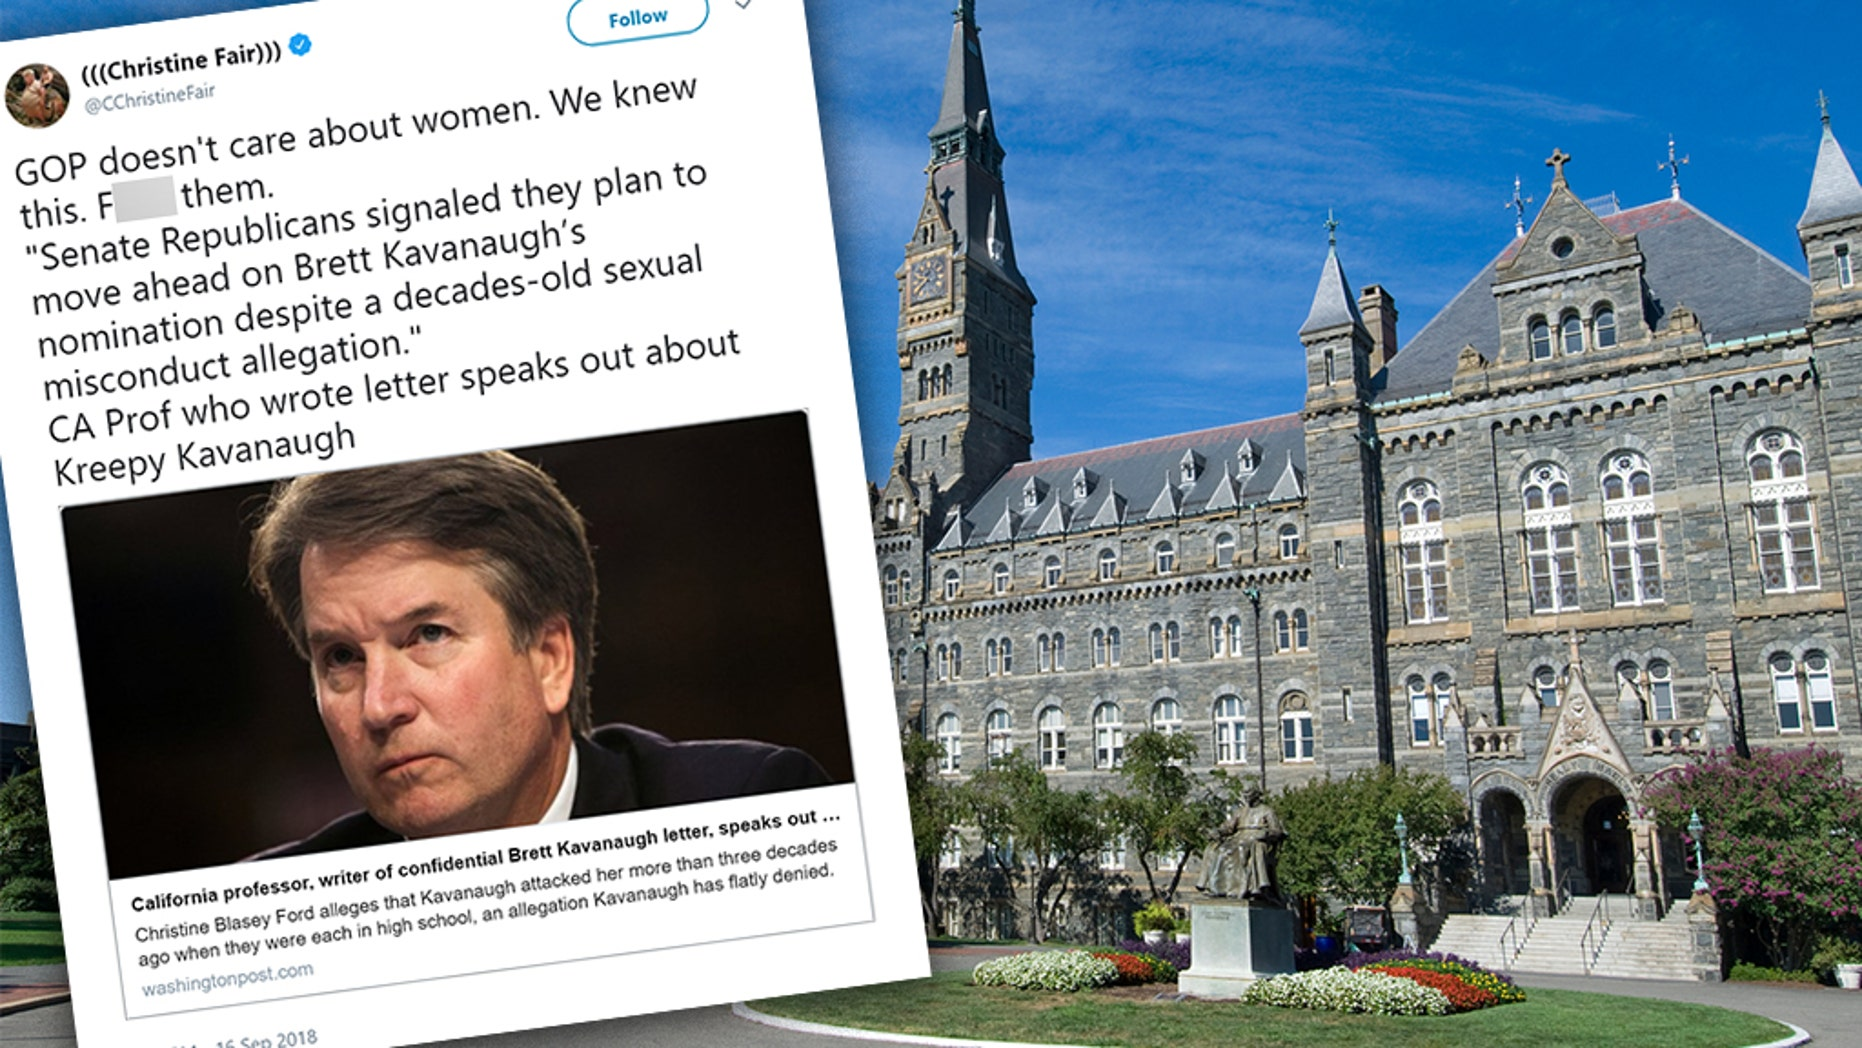 An associate professor at Georgetown University invoked profanity in a Twitter rant targeting Brett Kavanaugh and the Republican Party.